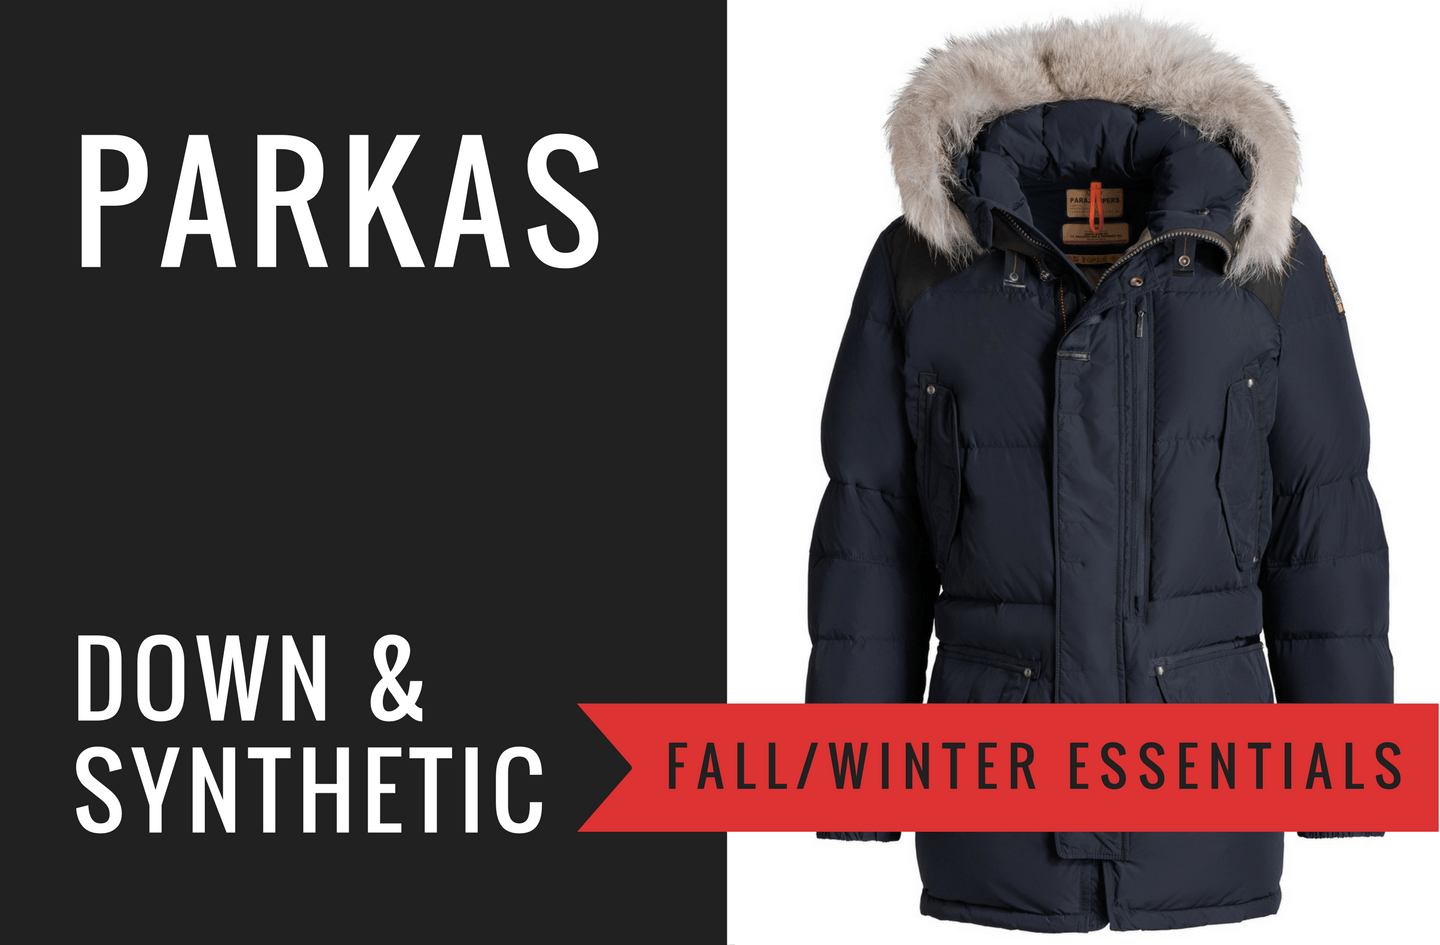 Fall Winter Coats – Parkas